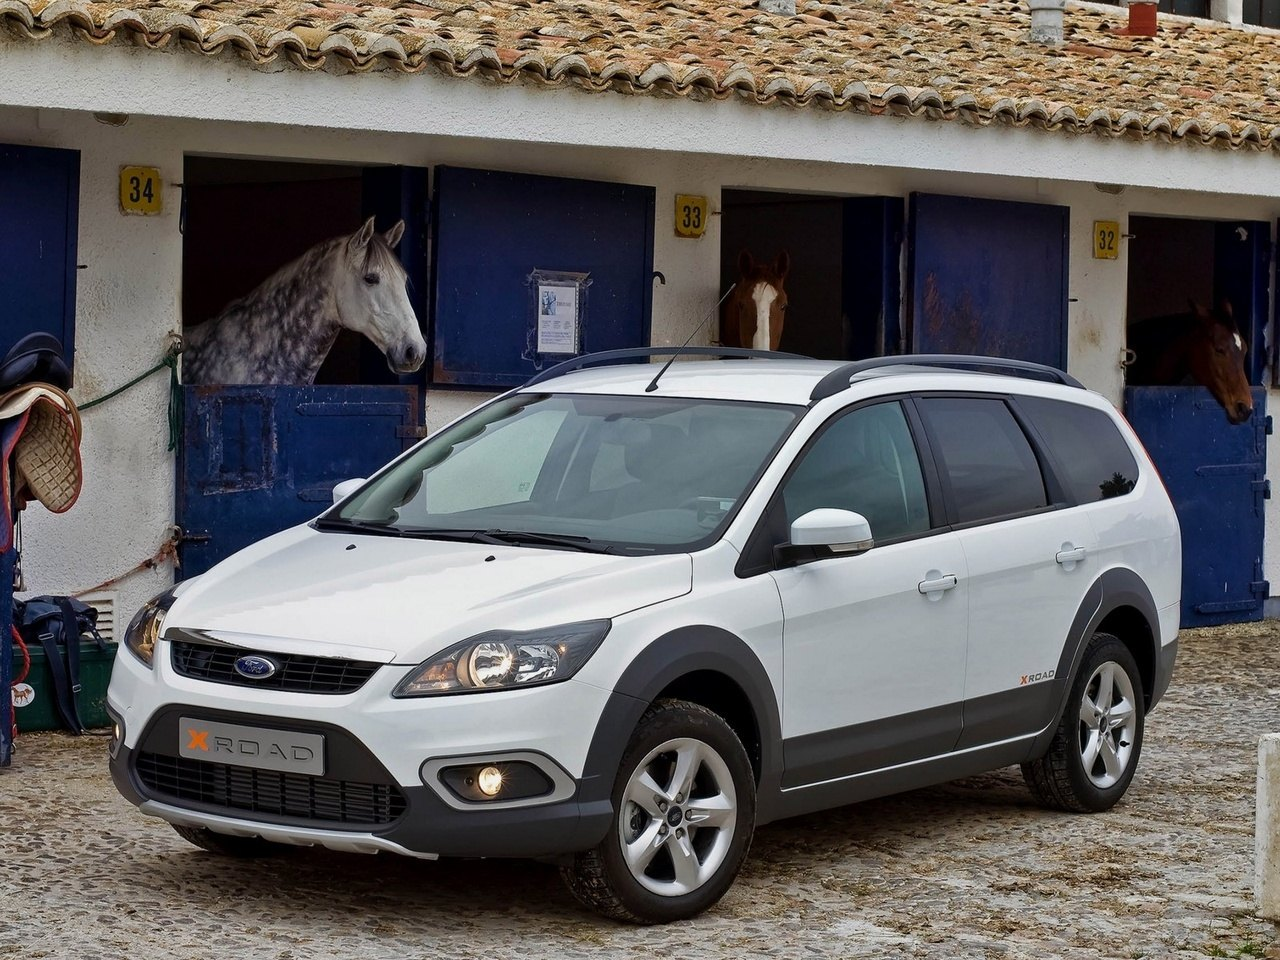 Ford Focus X Road 3